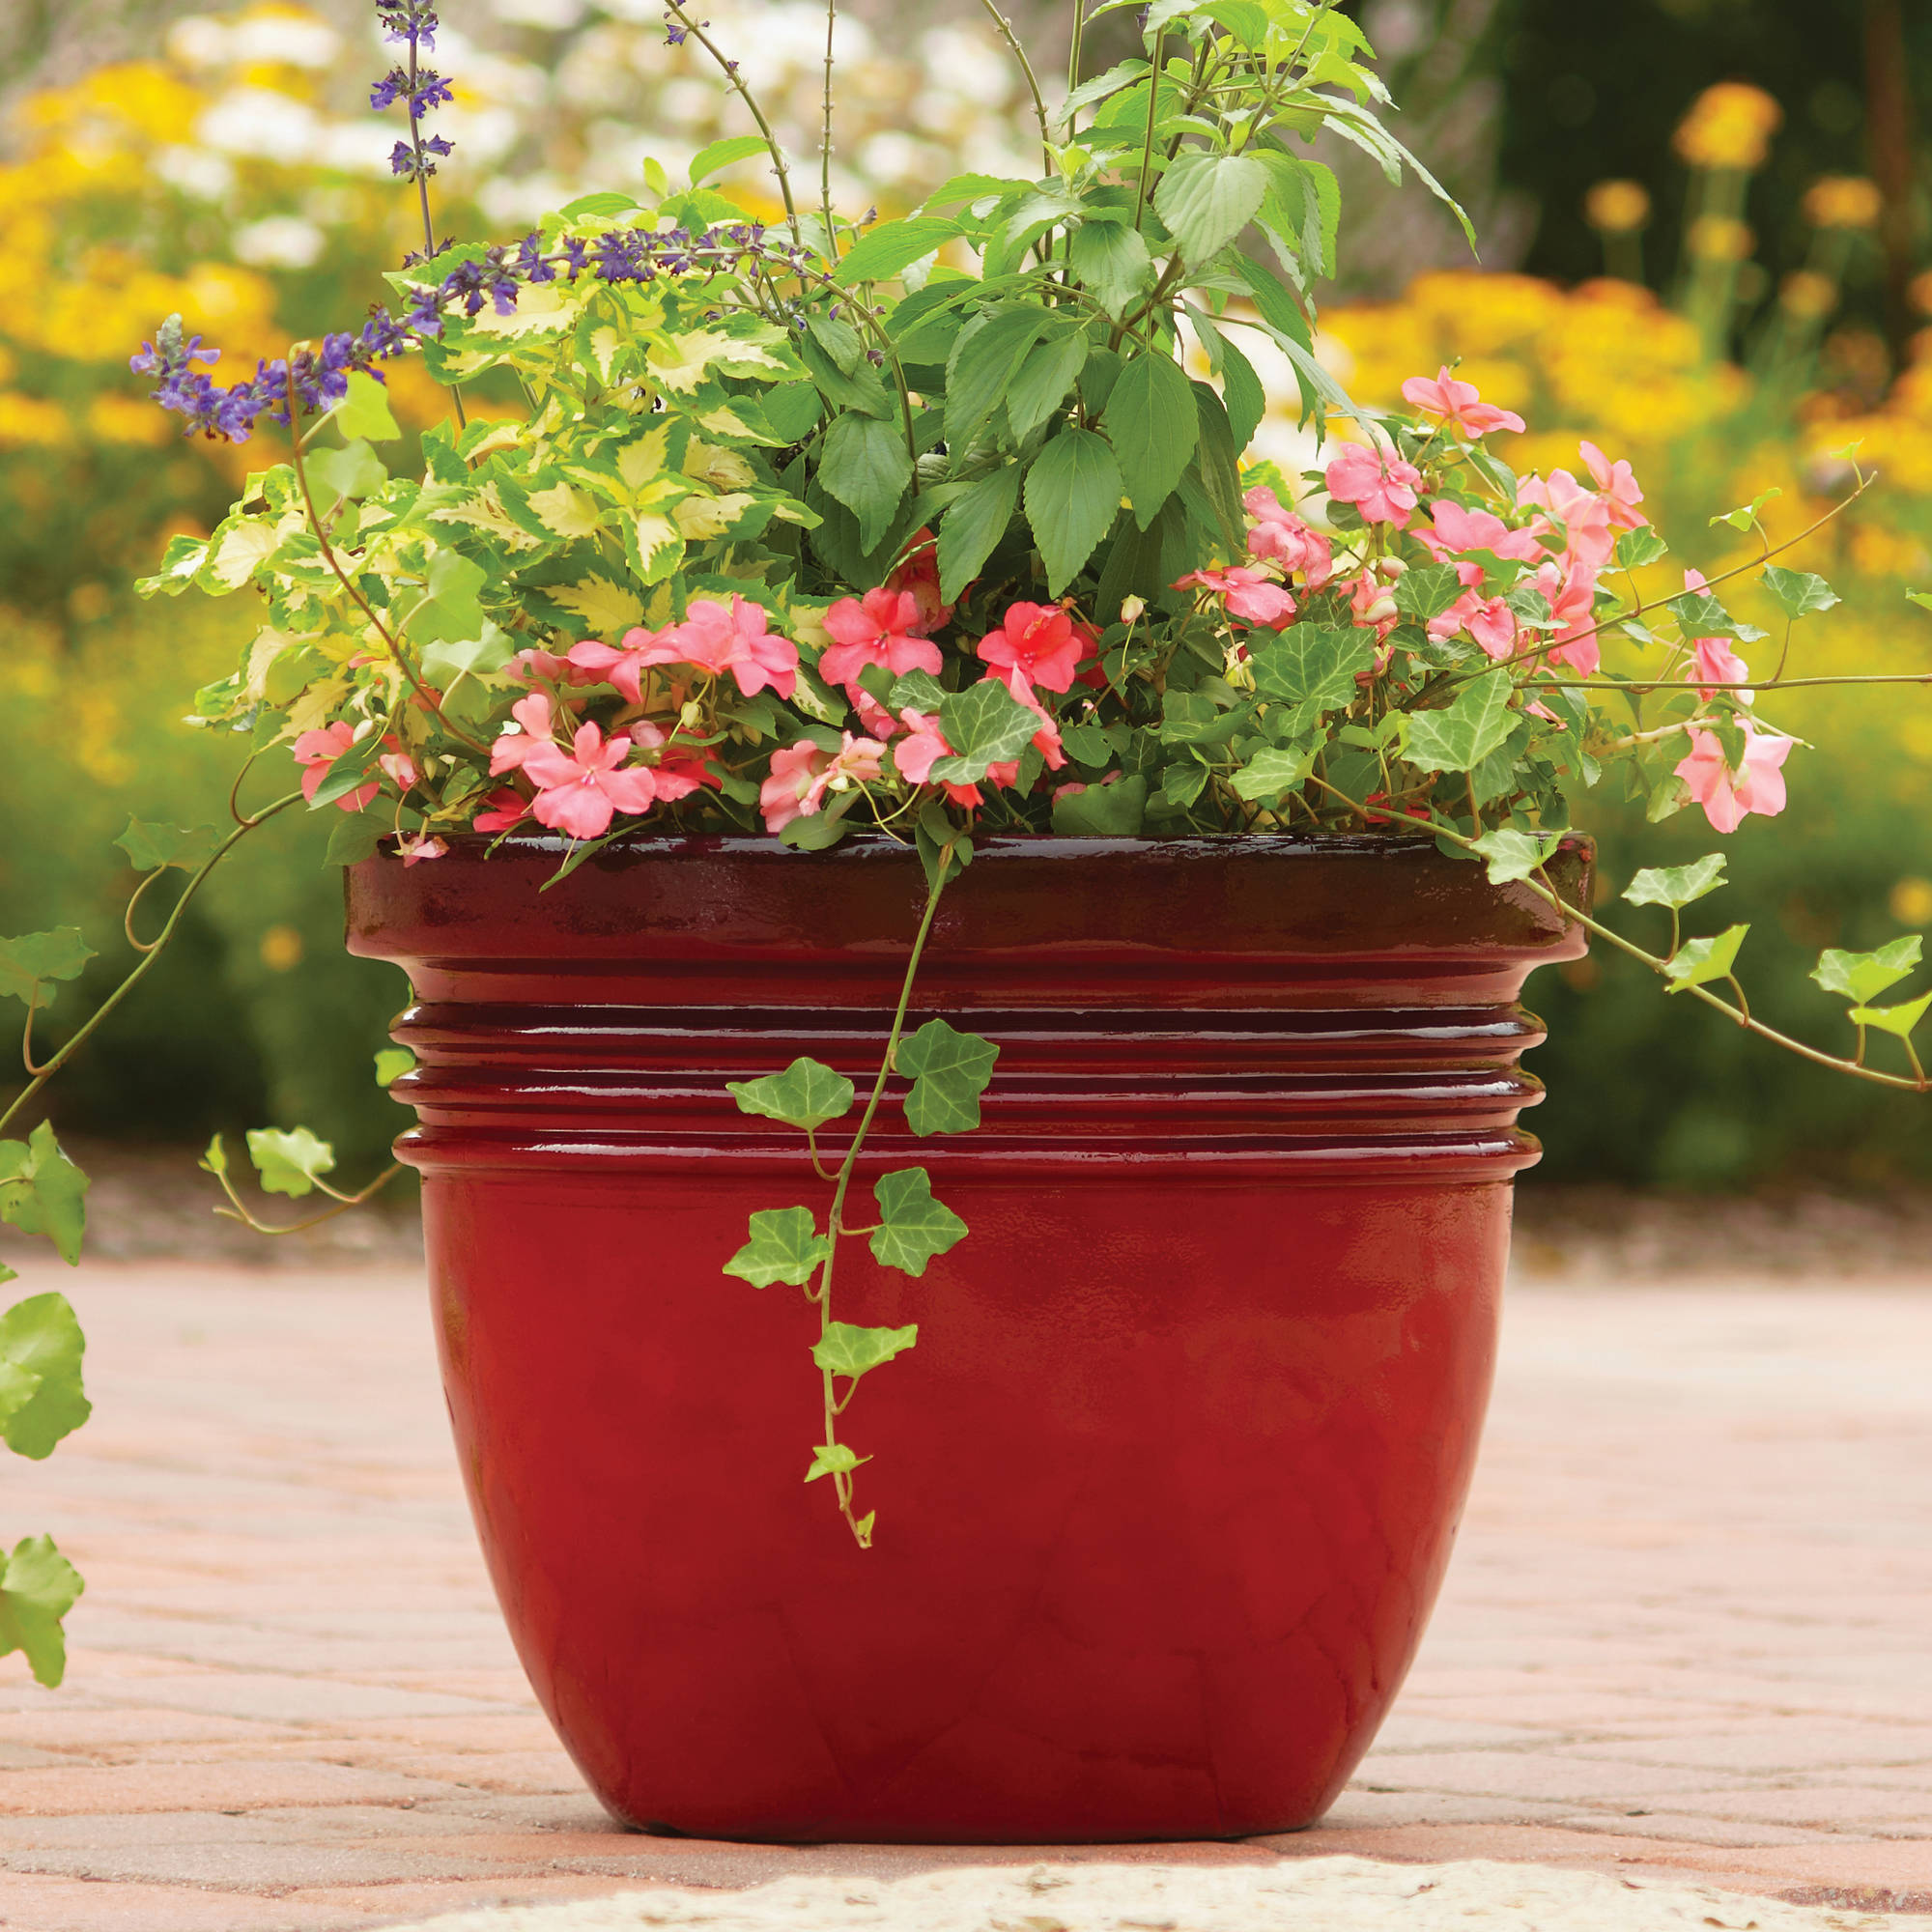 Better Homes and Gardens Bombay Decorative Planter, Red Sedona, Multiple Sizes